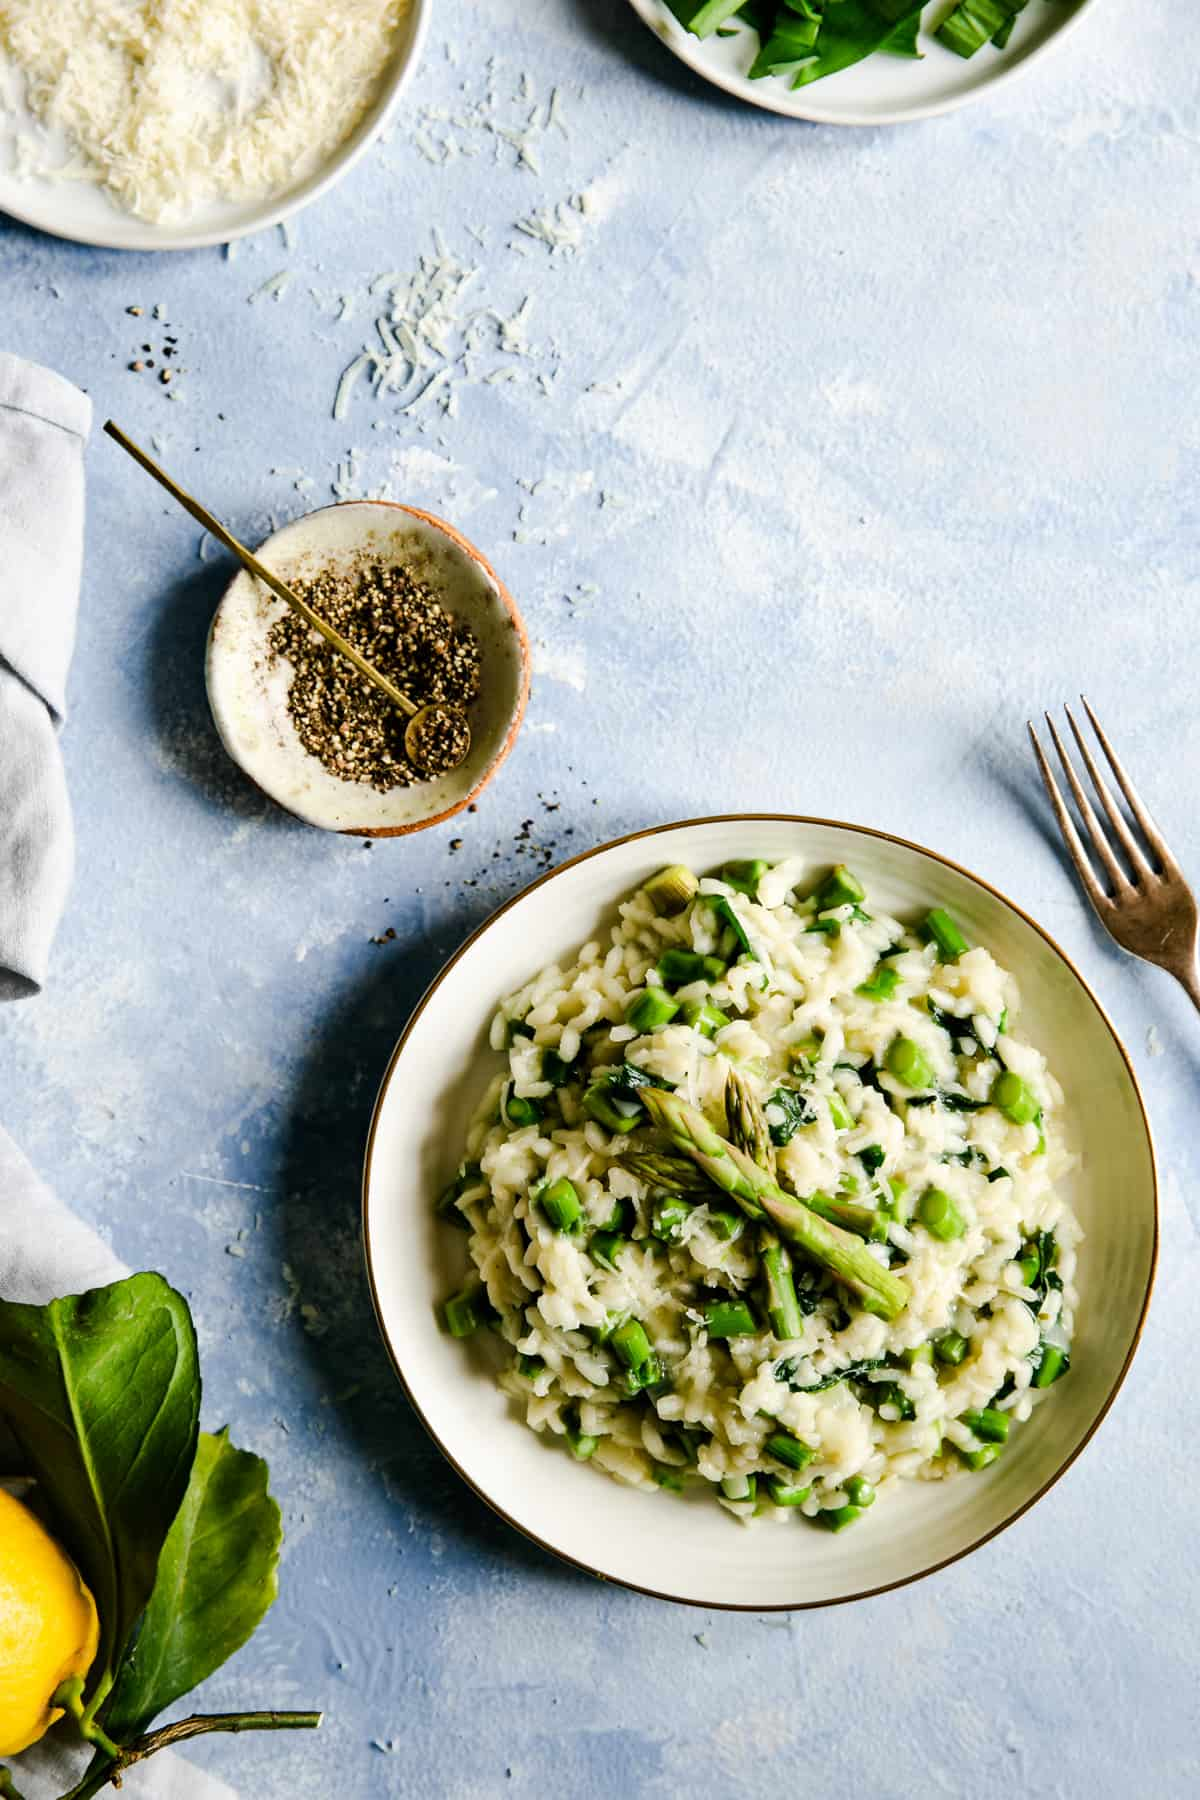 Overhead shot of a bowl with wild garlic and asparagus risotto with small side dish with black pepper